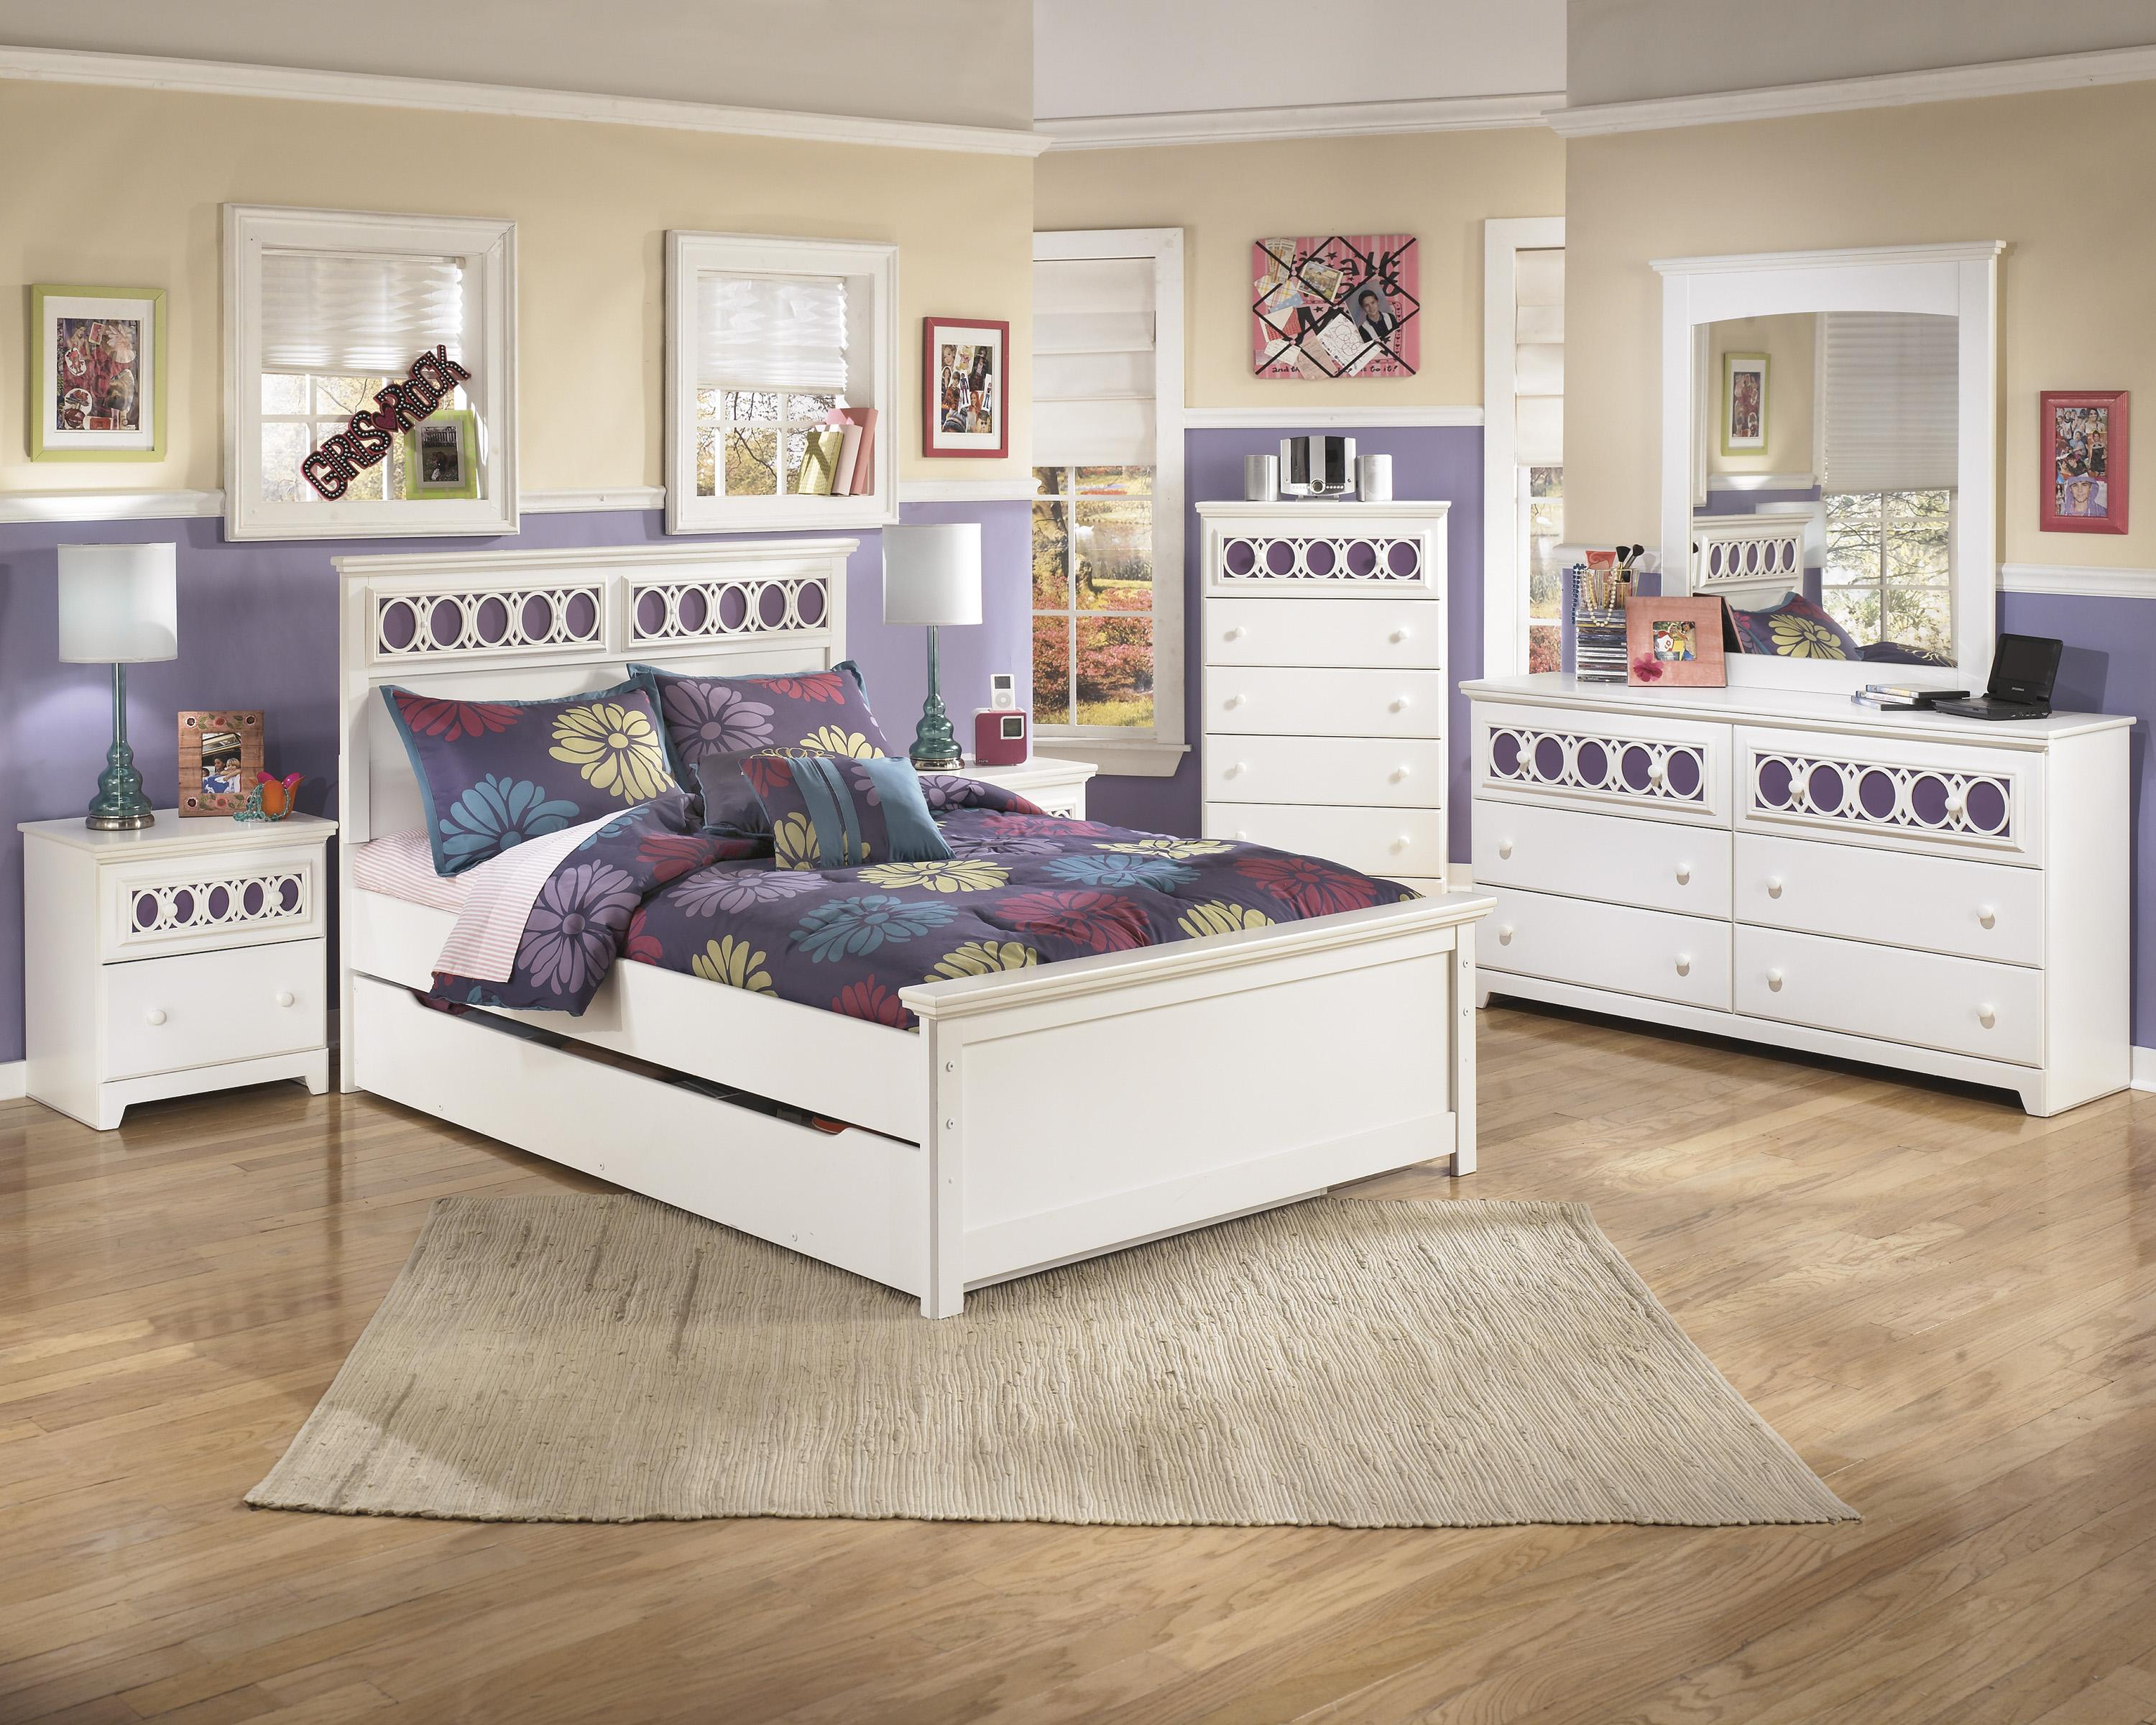 Signature Design by Ashley Zayley Full Bedroom Group - Item Number: B131 F Bedroom Group 3